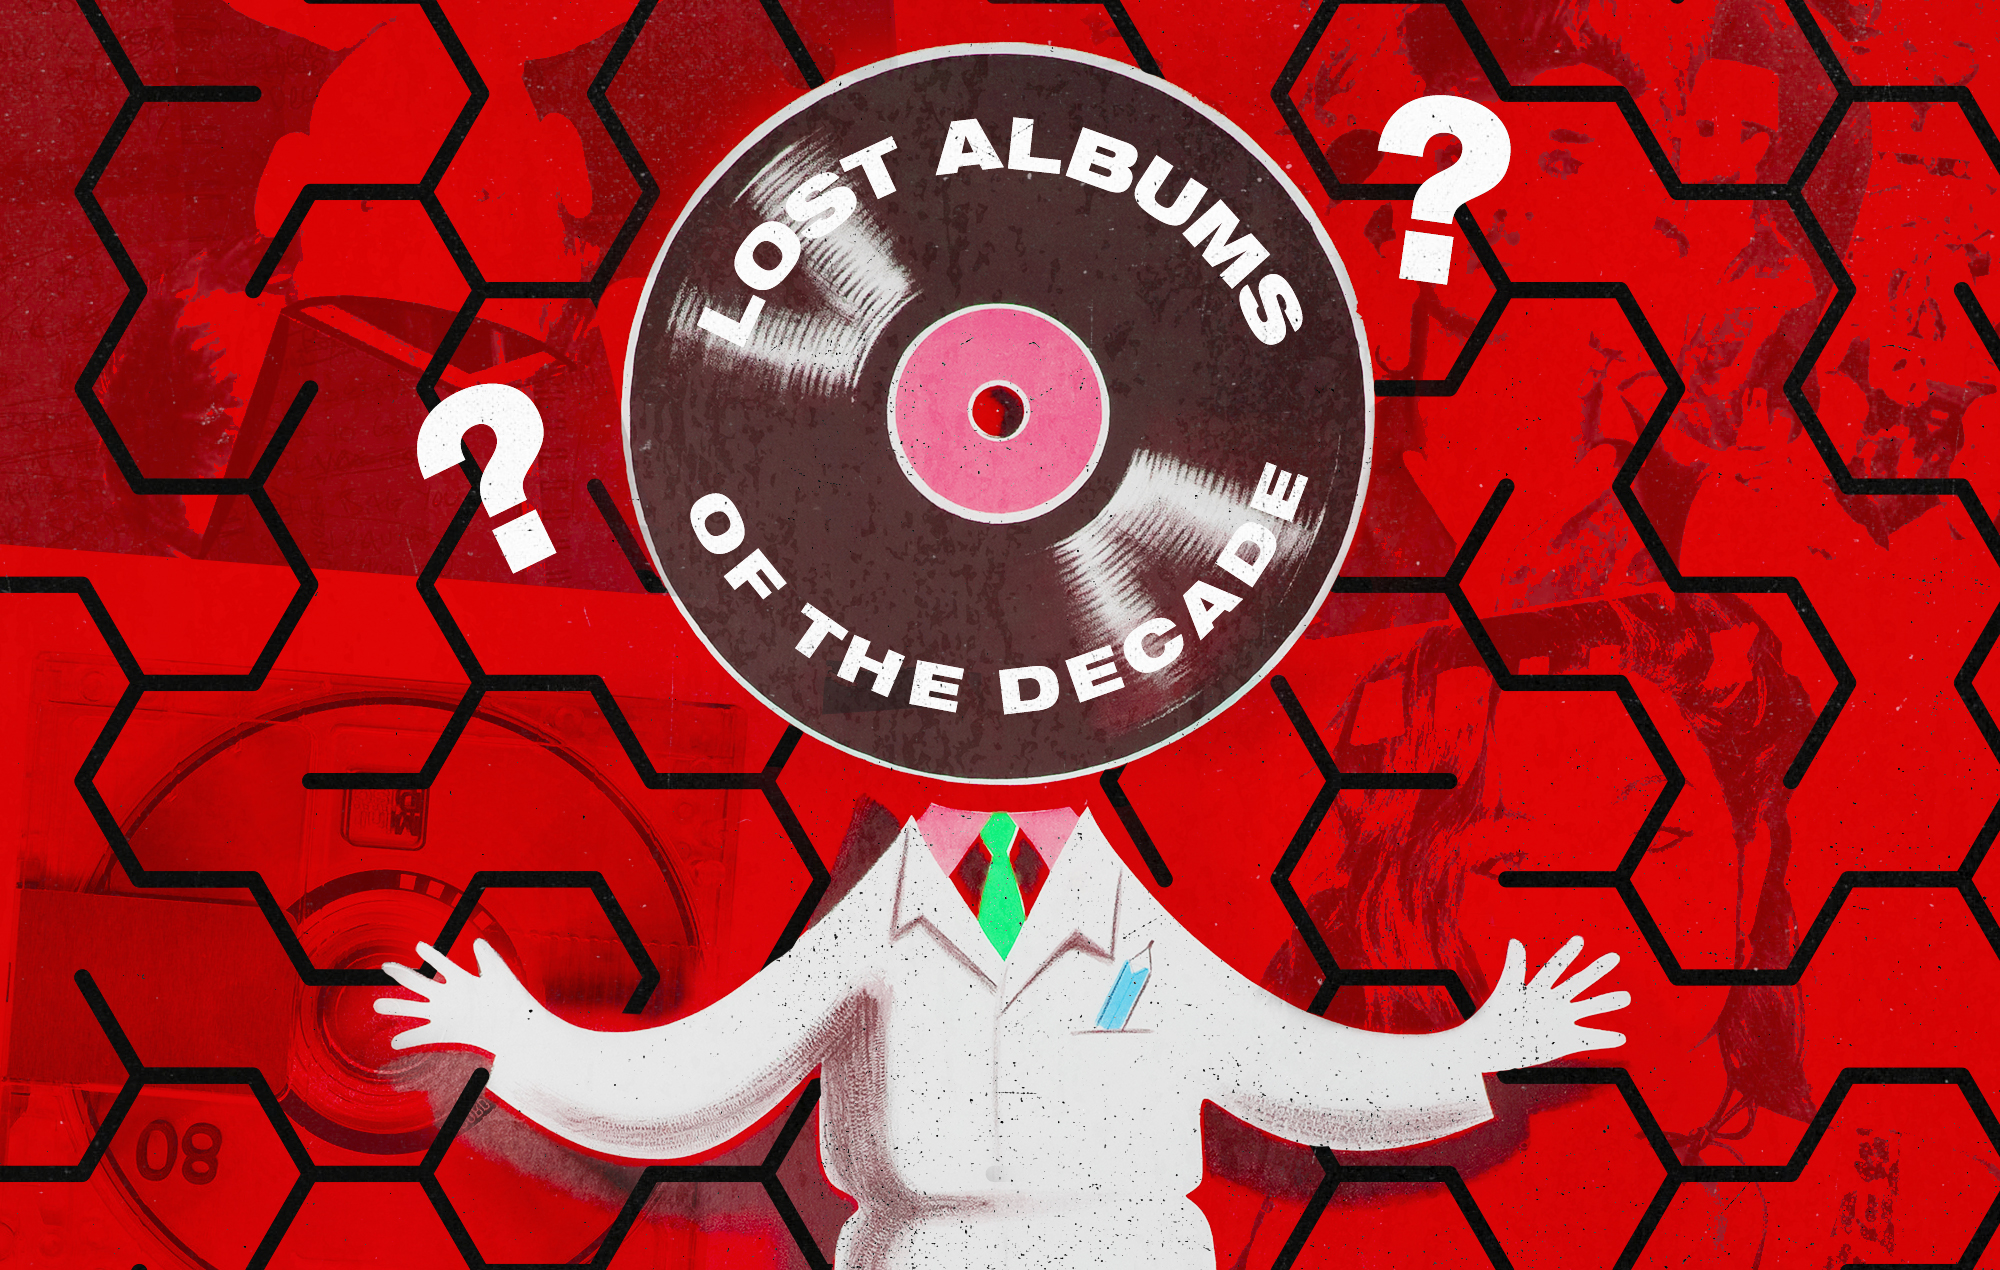 Lost albums of the 2010s – what became of the albums we were promised but that never arrived?